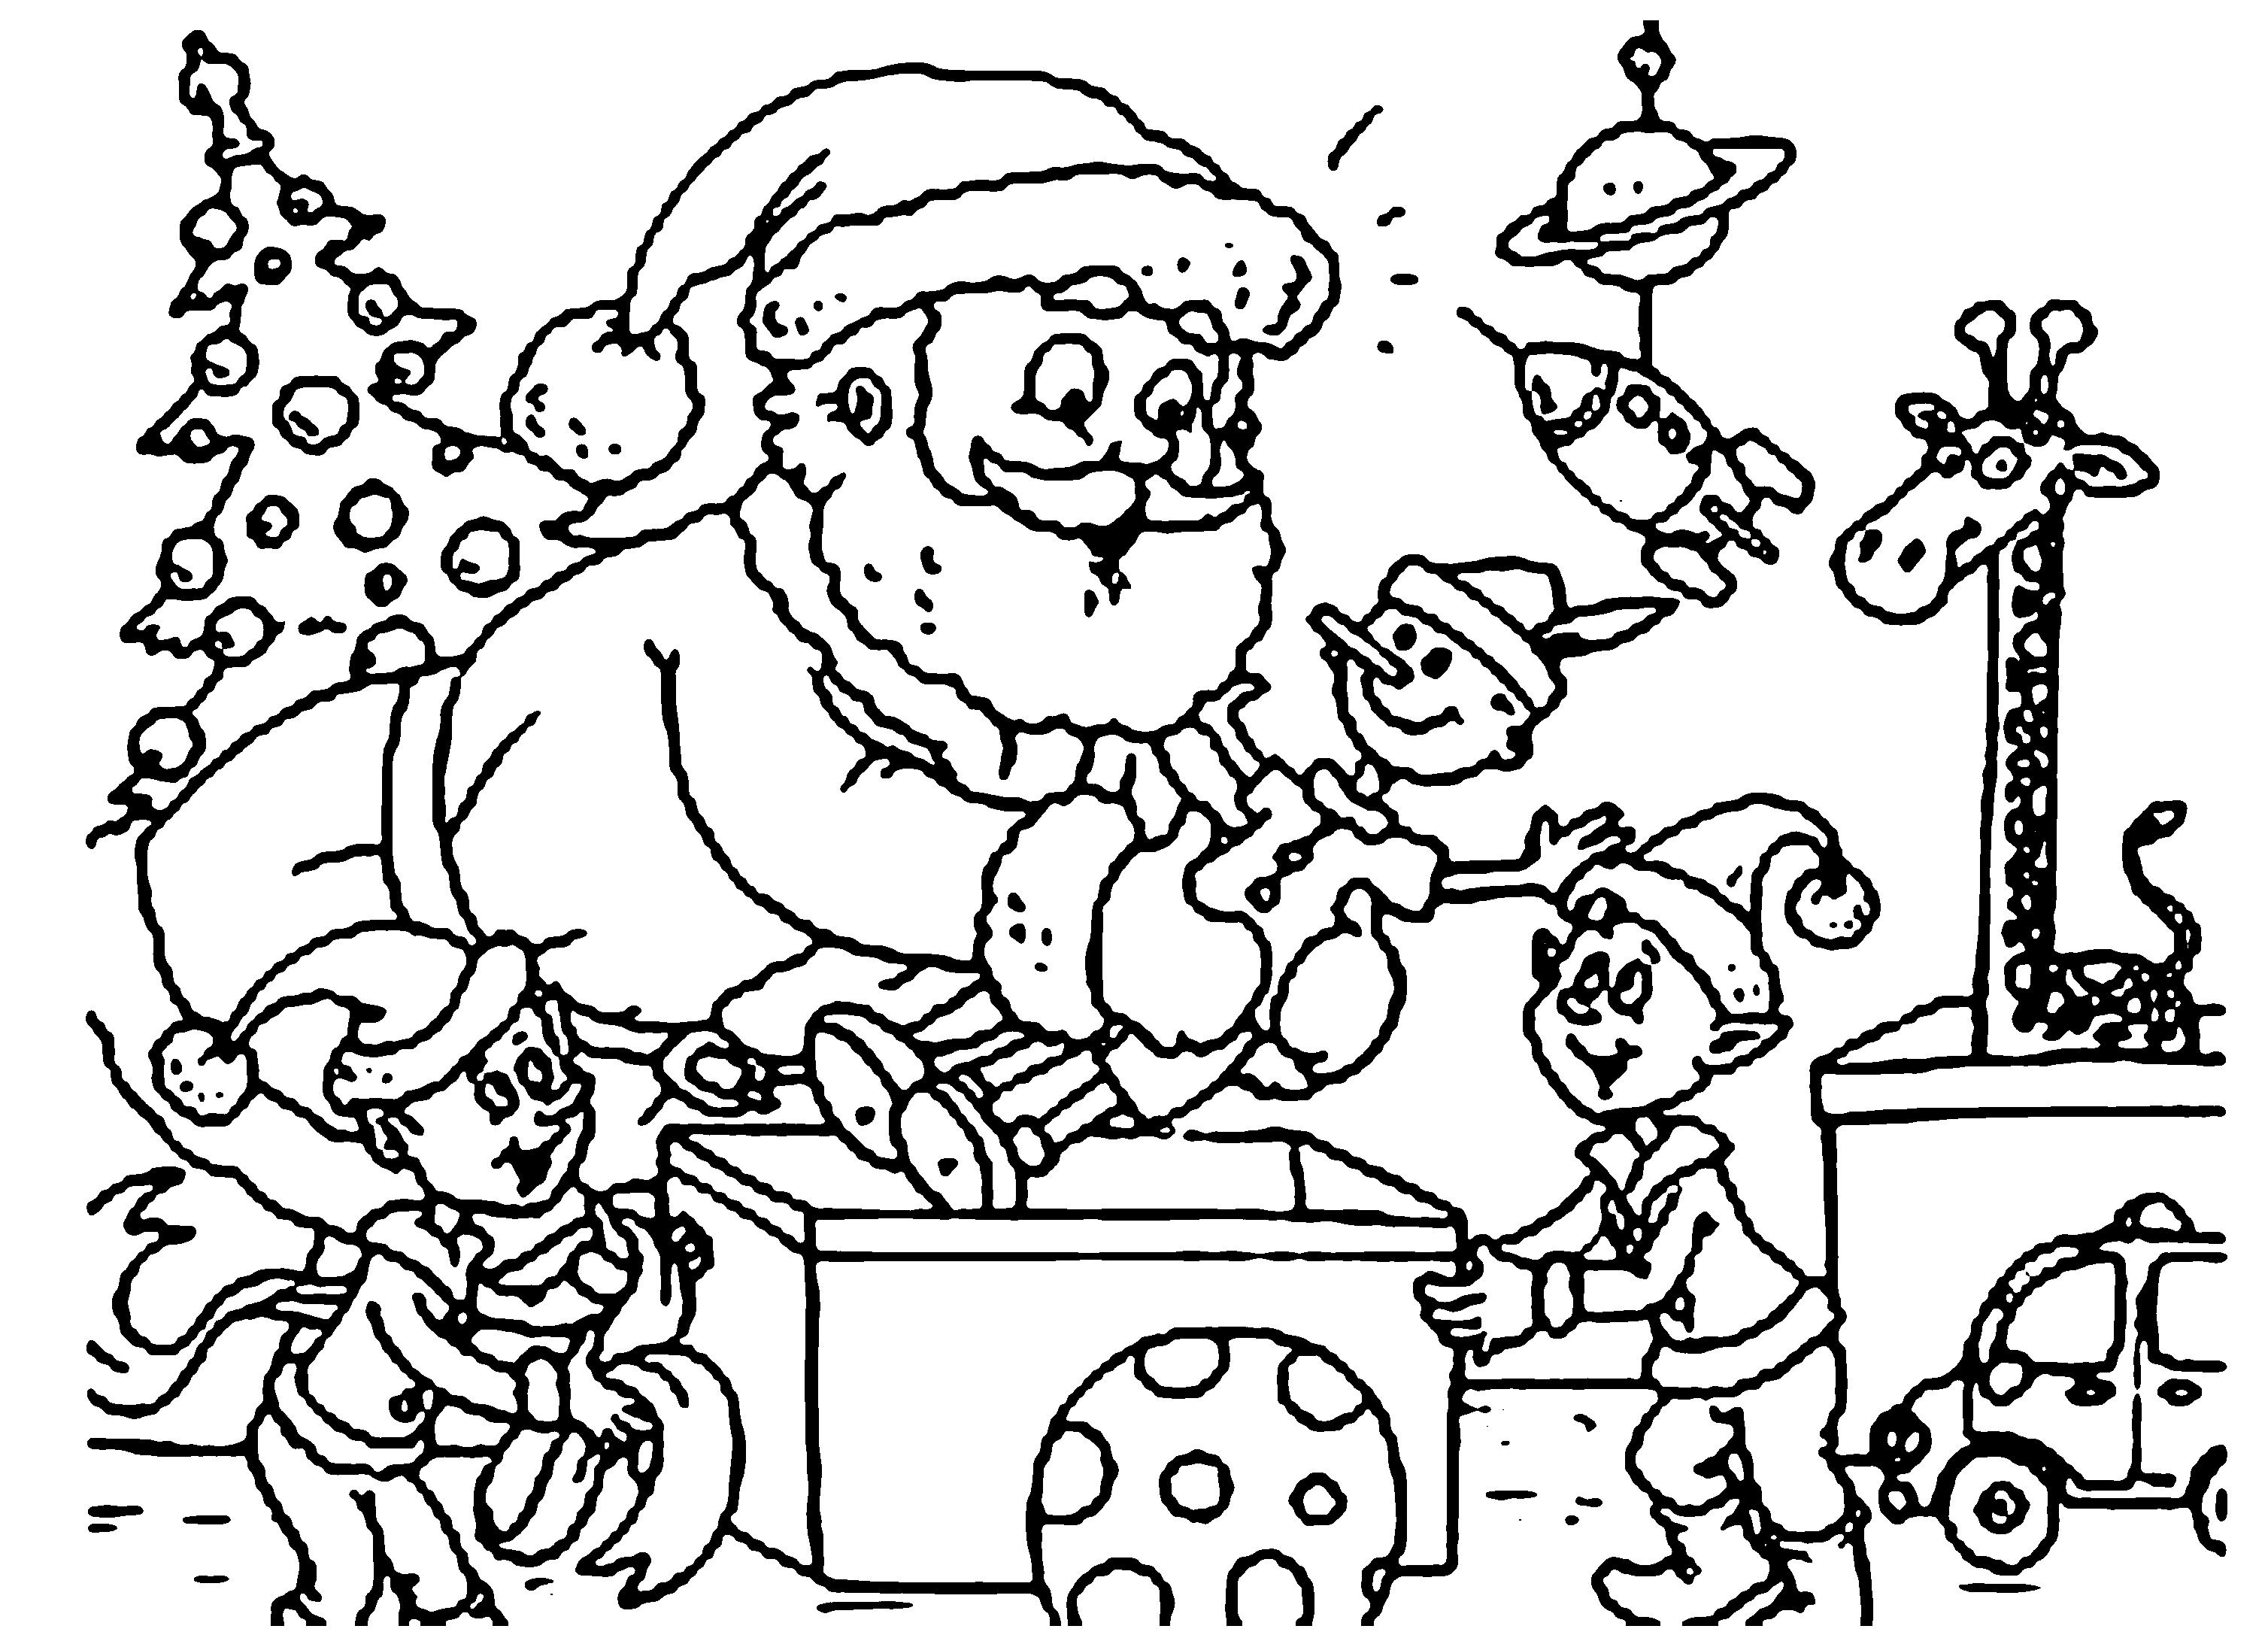 Elf On The Shelf Coloring Pages To Print - Coloring Home